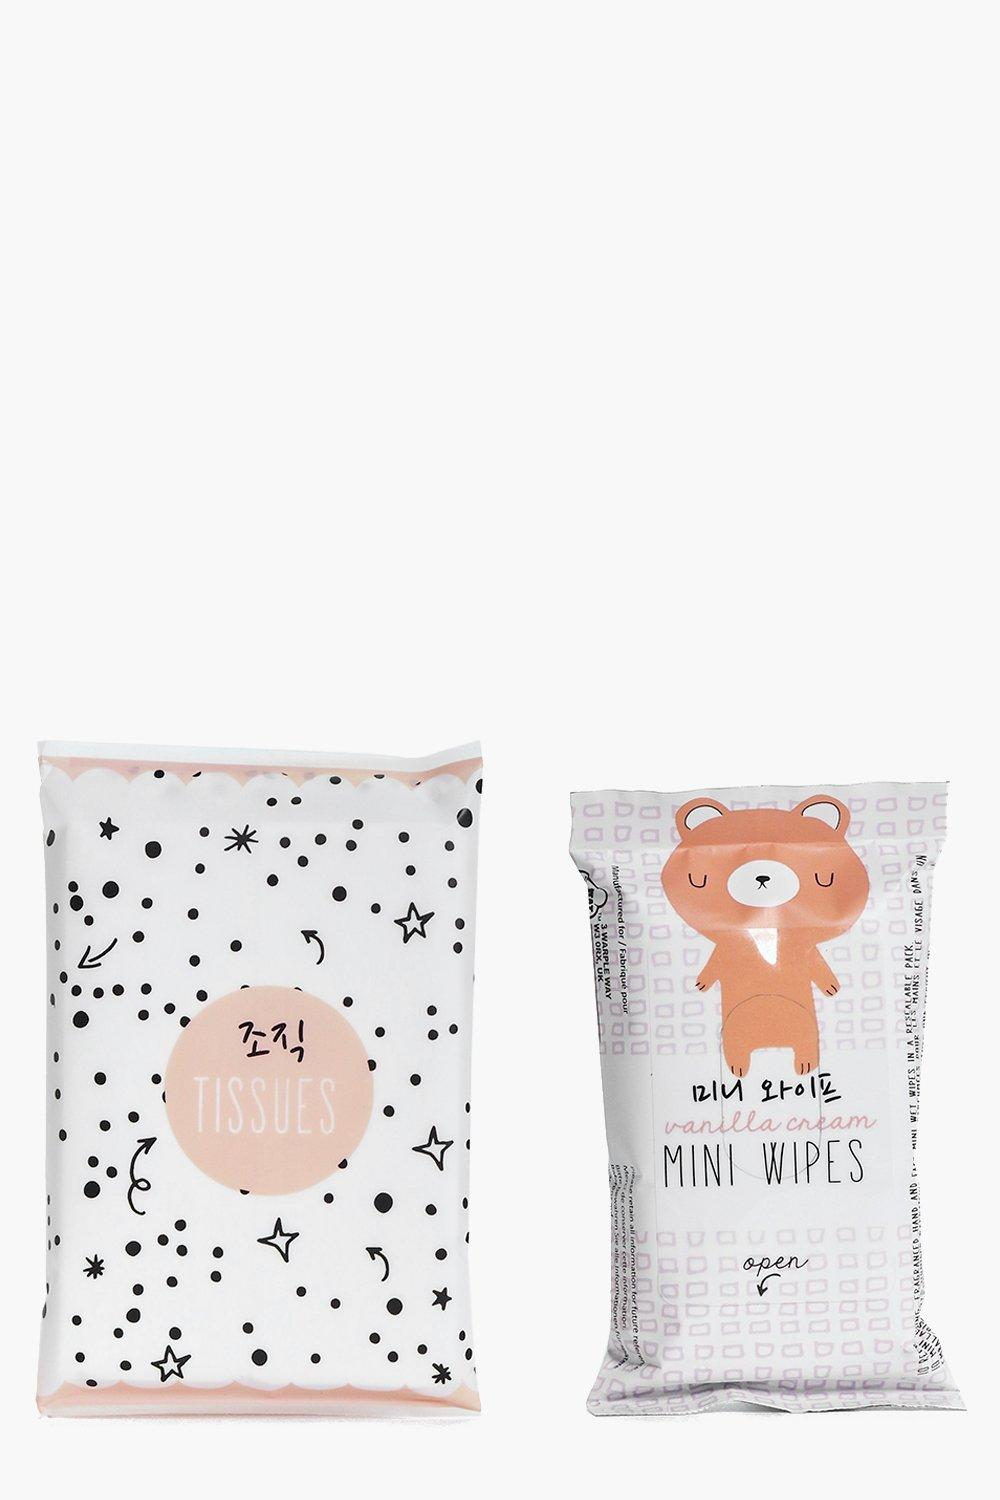 Oh K! Tissue and Wipes Set